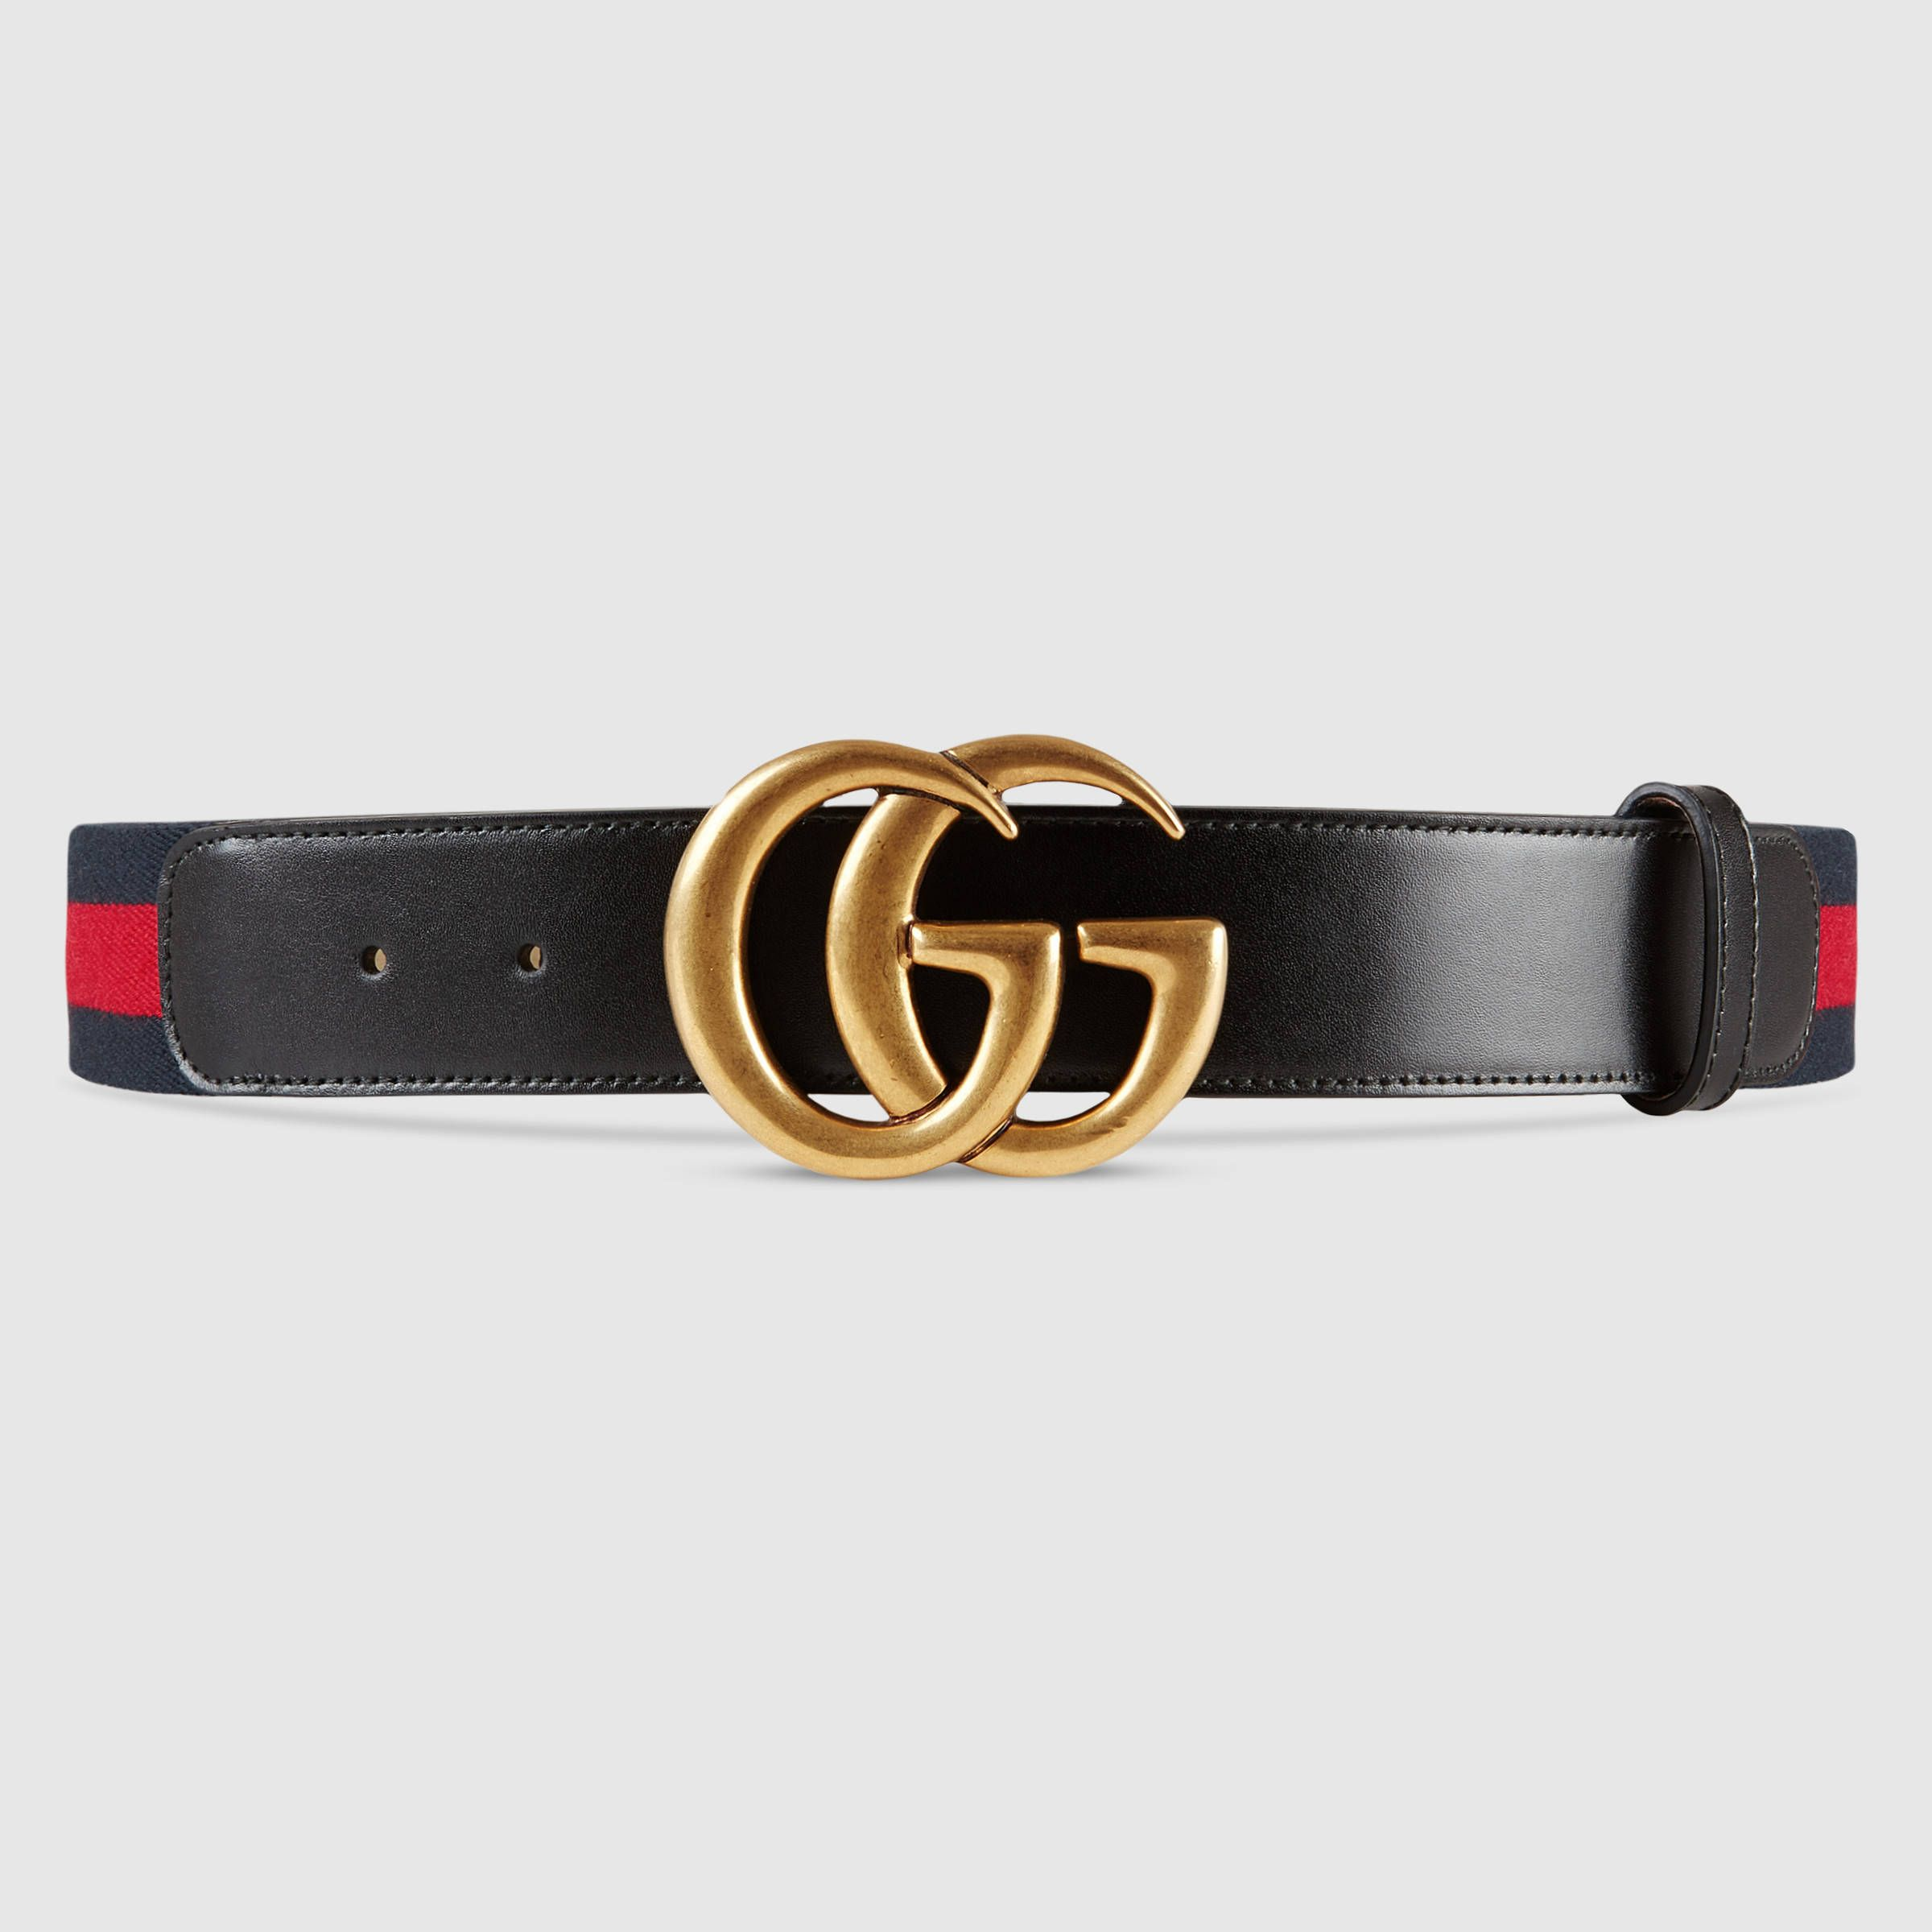 9f66c2b63 Nylon Web belt with double G buckle - Gucci Men's Casual 409416H17WT8632